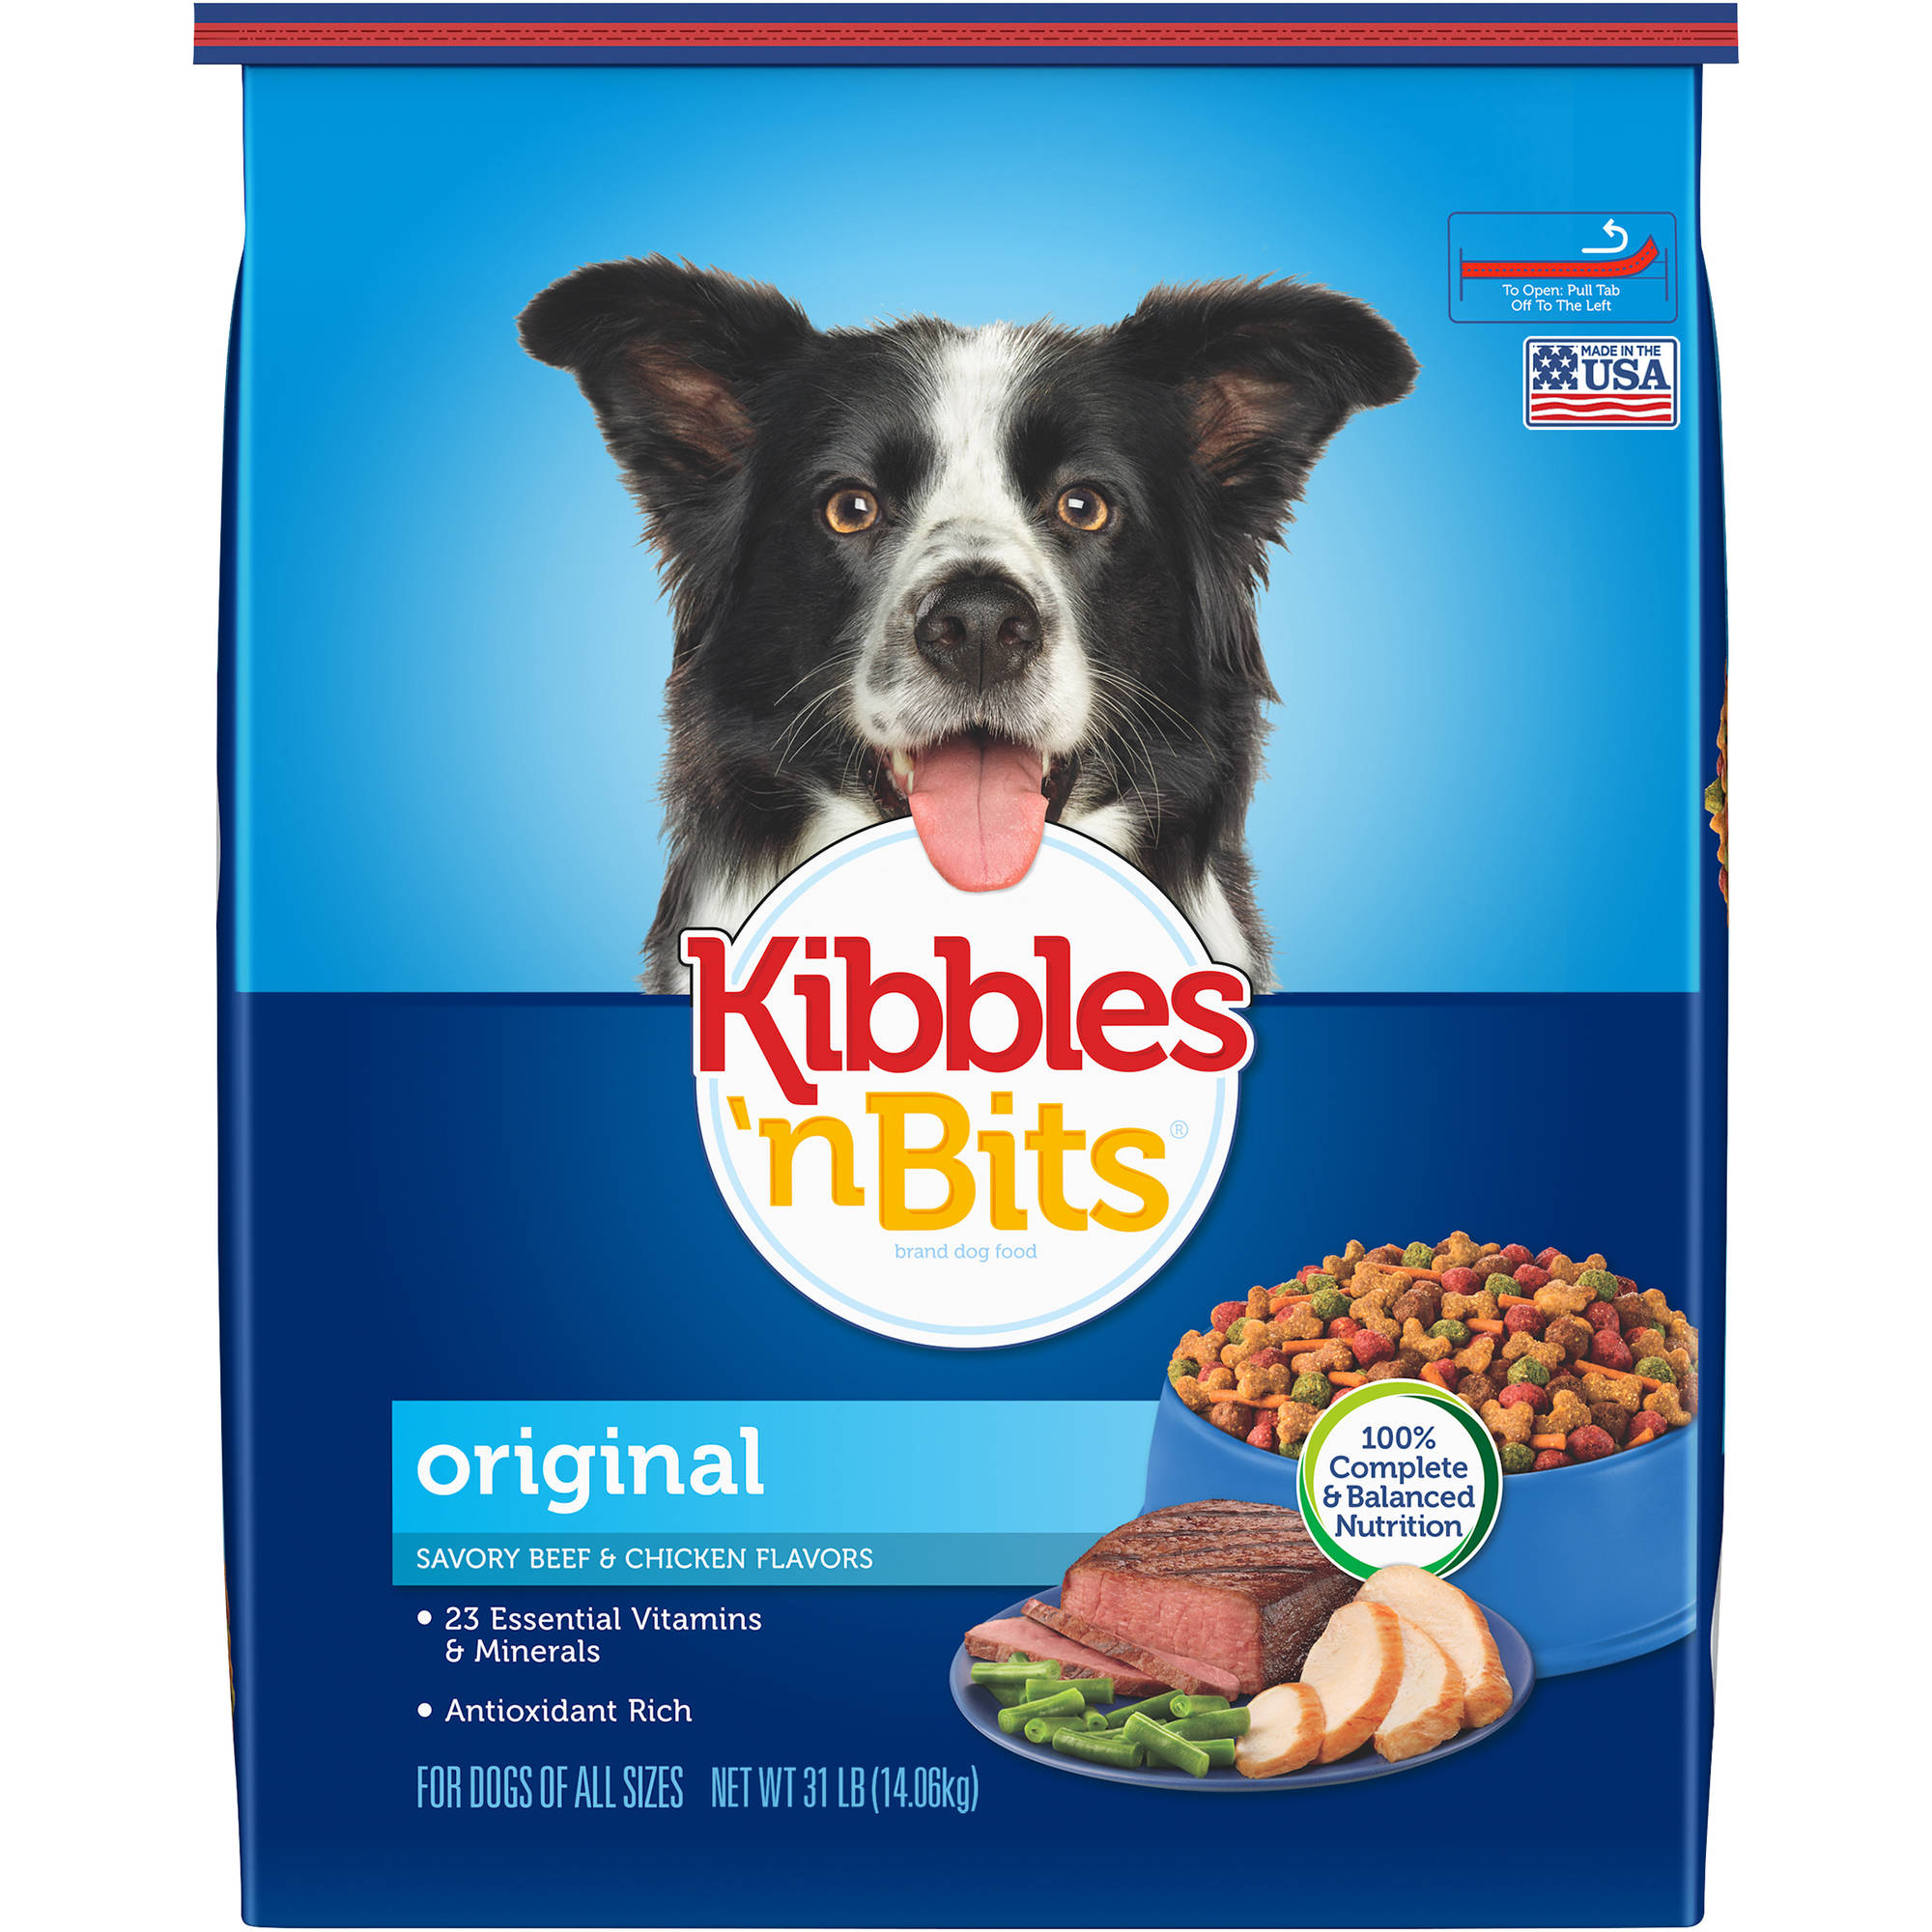 Kibbles 'n Bits Original Savory Beef and Chicken Flavors Dry Dog Food, 31-Pound